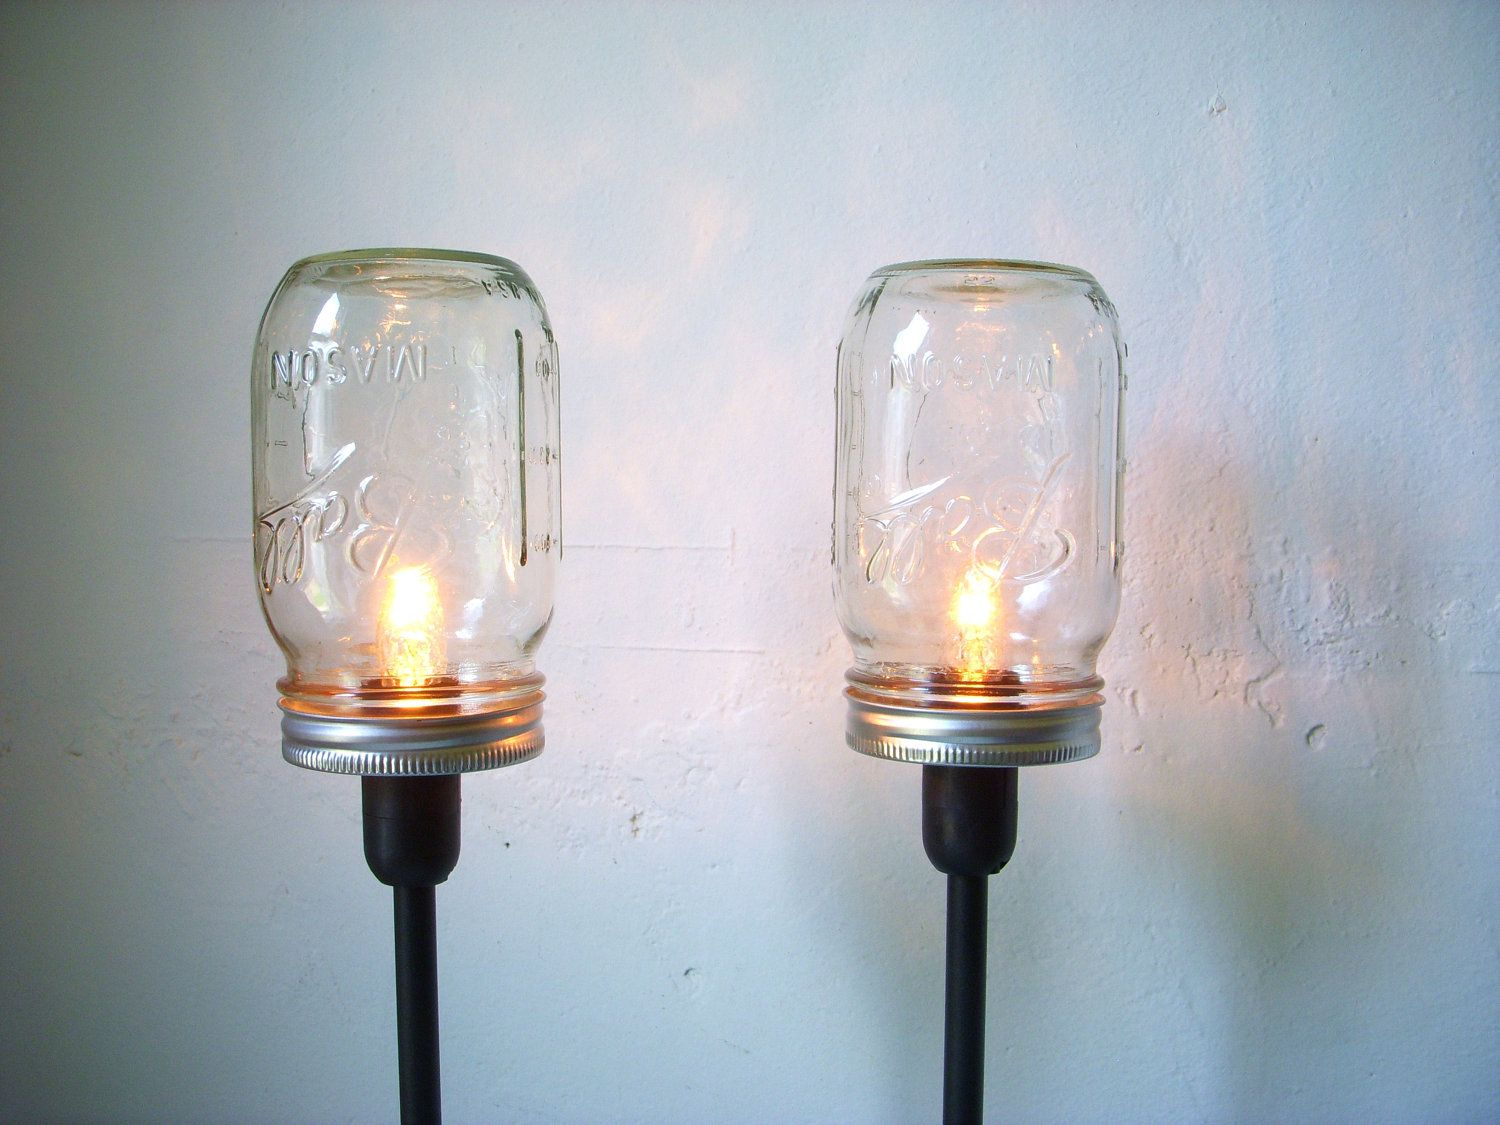 etsy industrial lighting. 2 mason jar table lamps upcycled lighting fixtures lights industrial modern etsy a